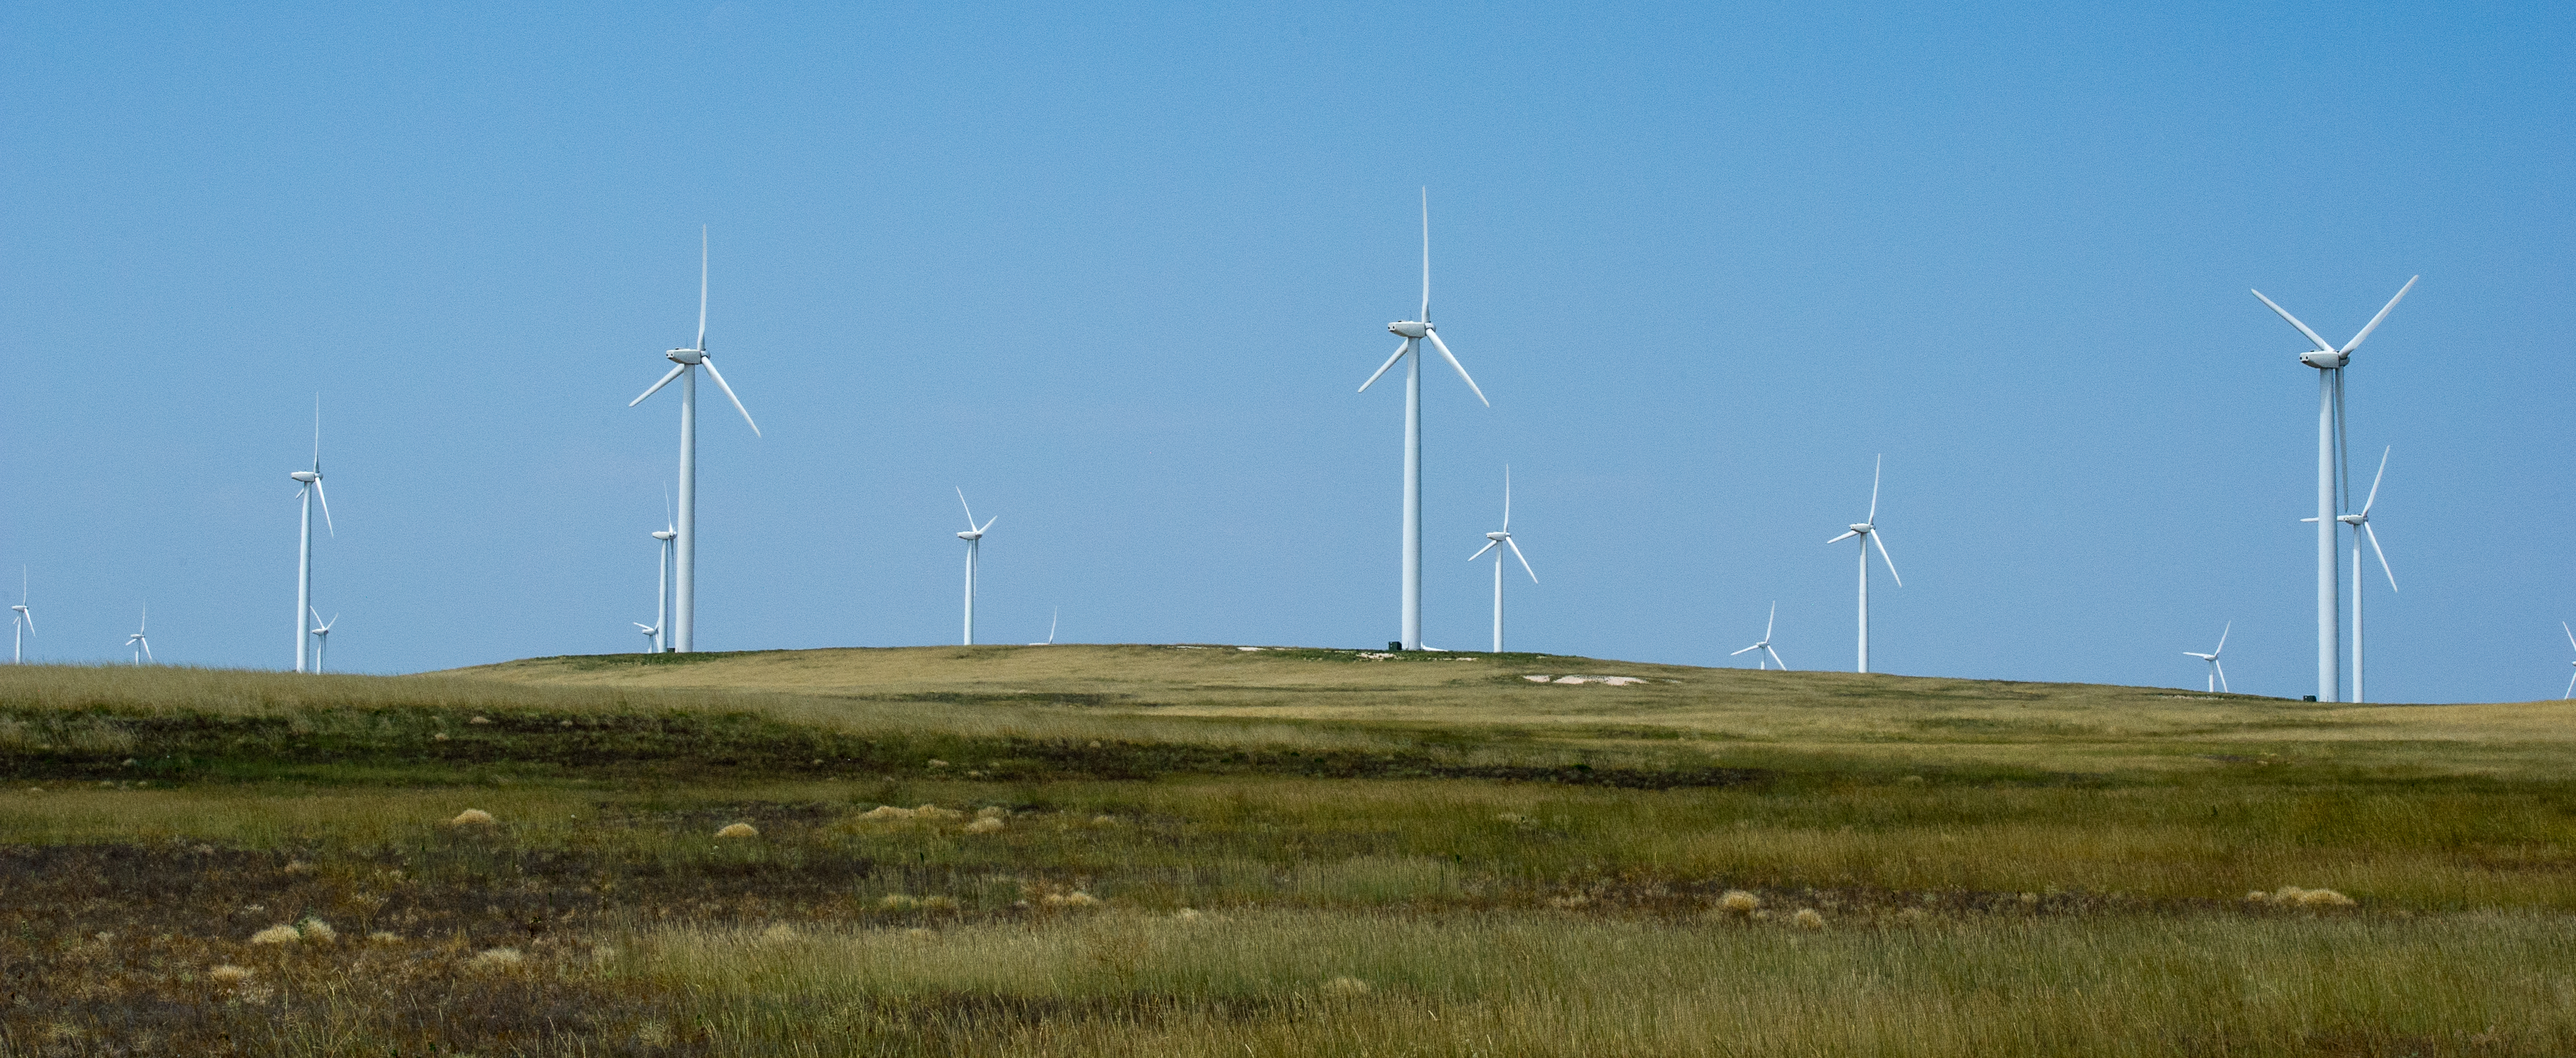 July 18, 2014 - Utility scale wind turbines at the Cedar Creek Wind Farm in Grover, Colorado. (Photo by Dennis Schroeder / NREL